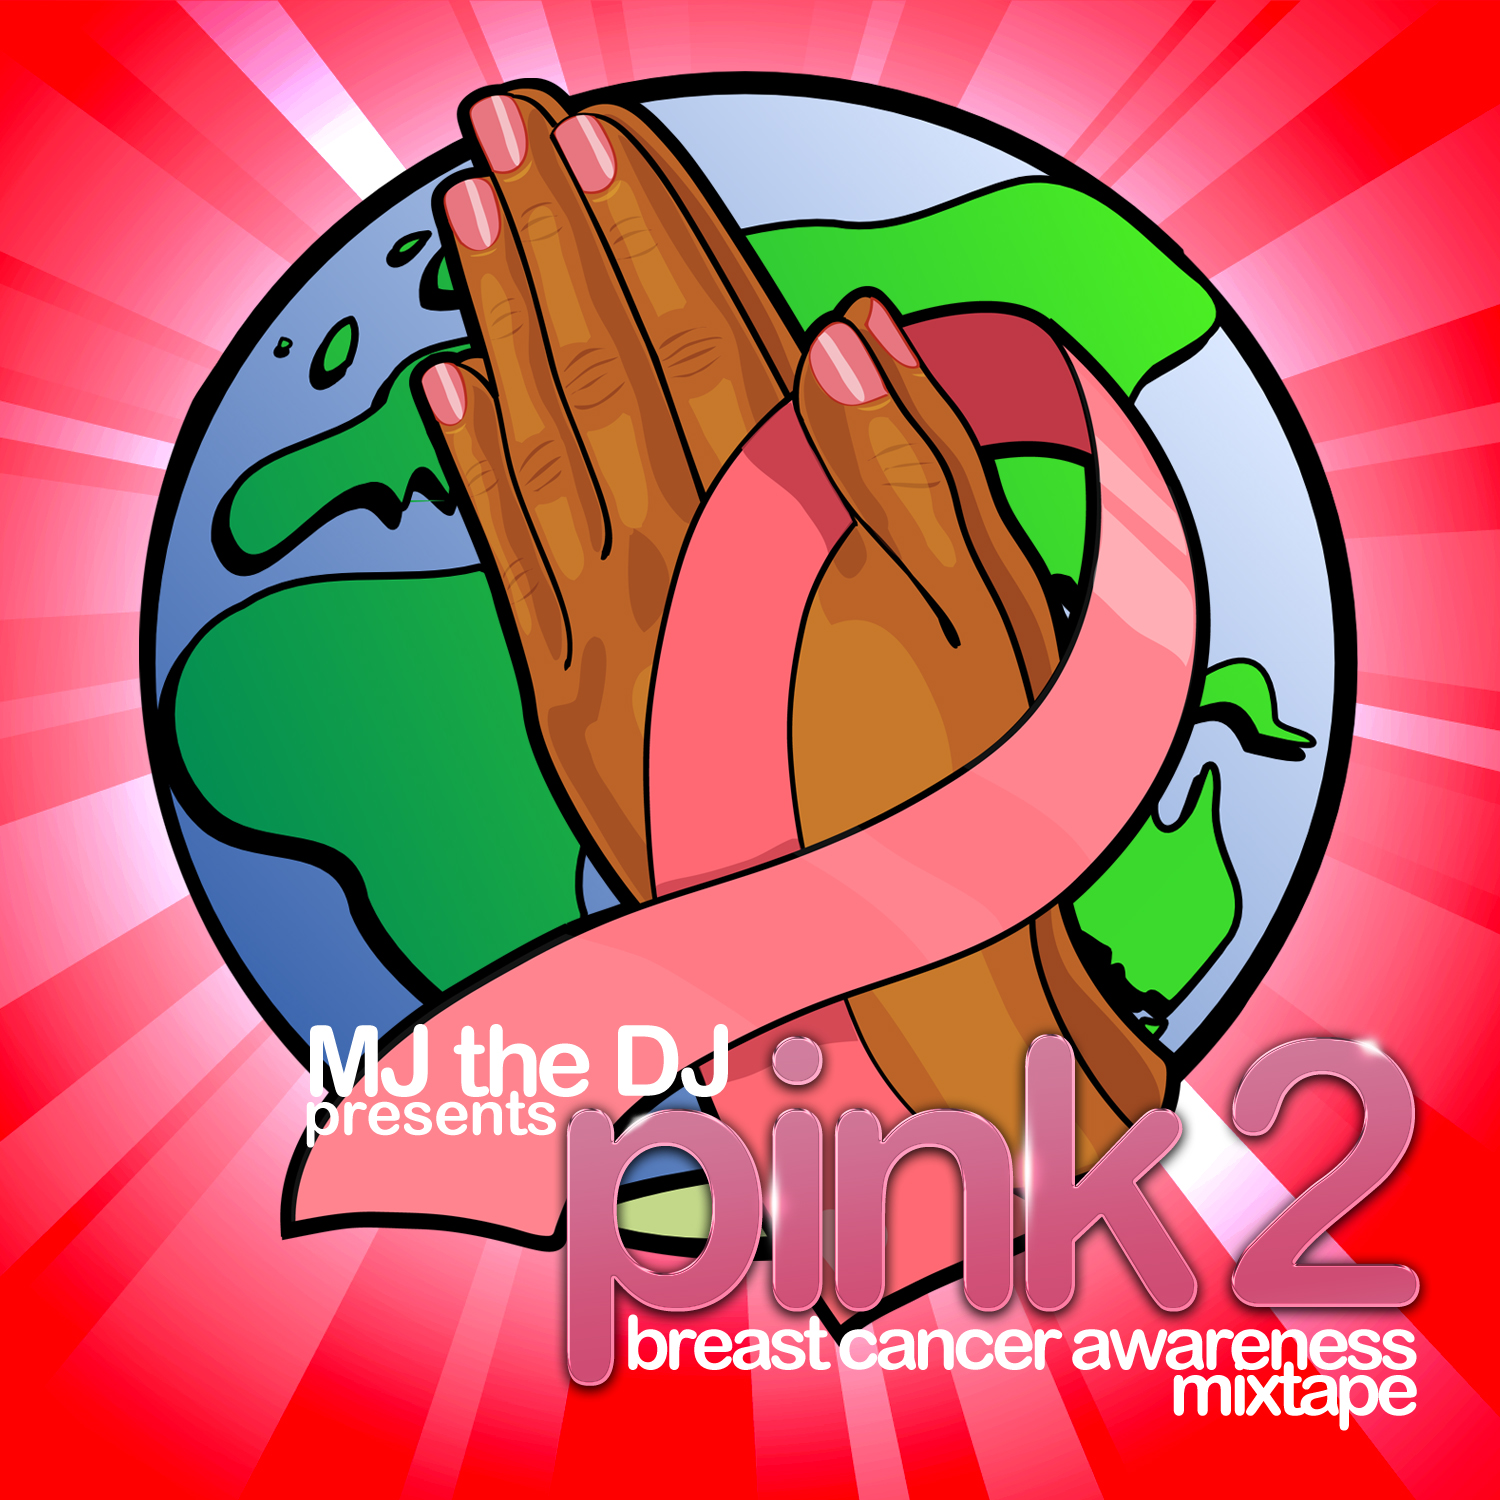 MJ the DJ Presents: PINK 2 The Breast Cancer Awareness Mixtape